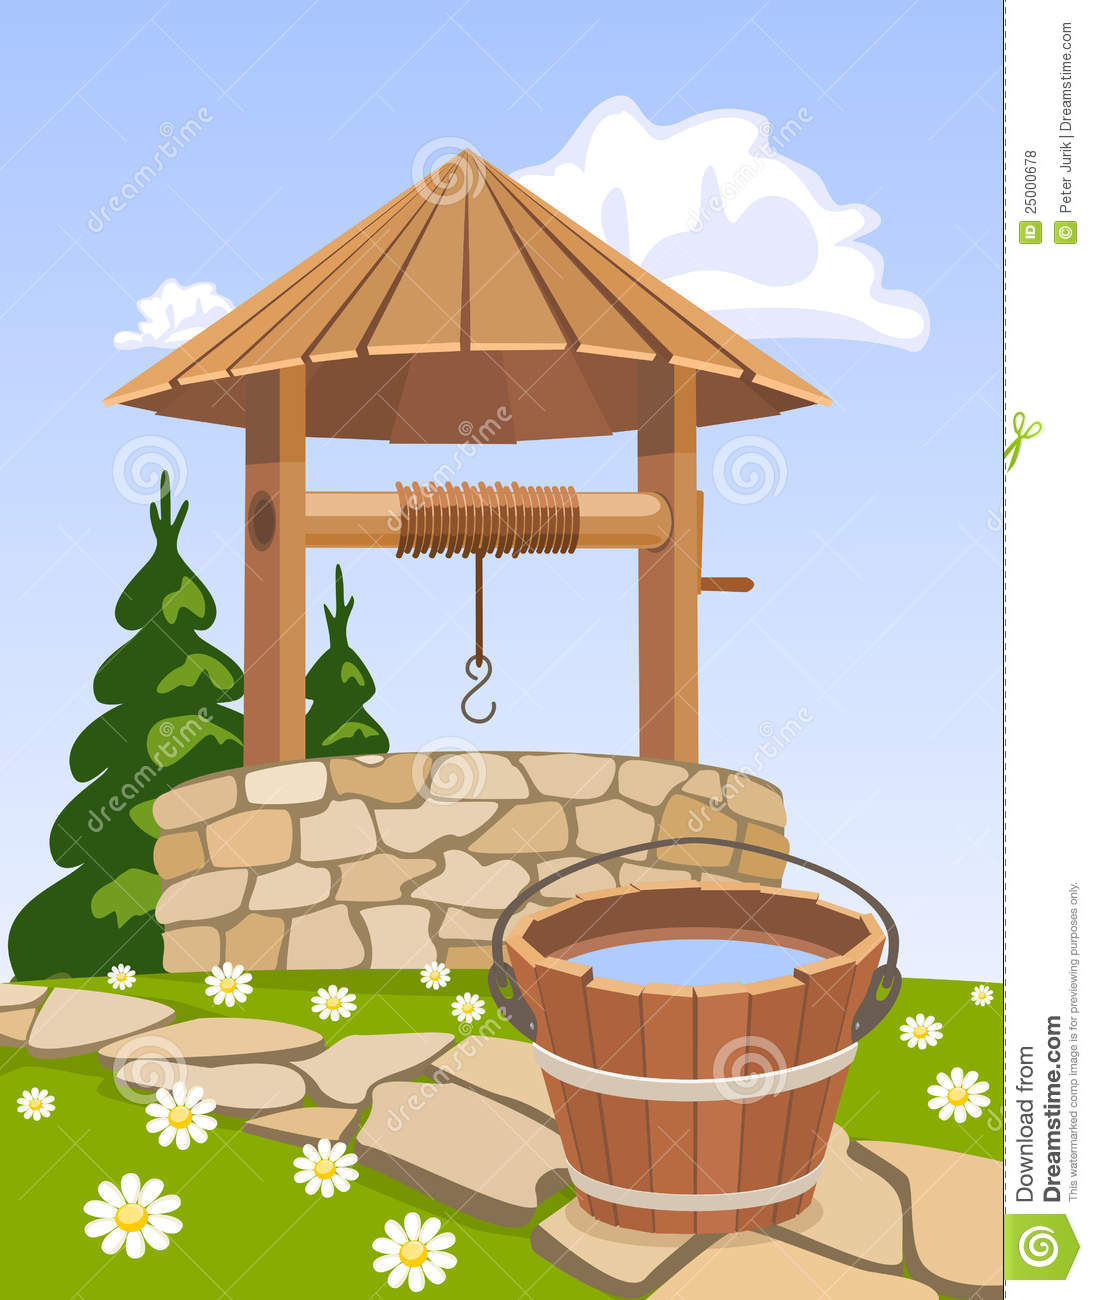 Wooden well and bucket of water